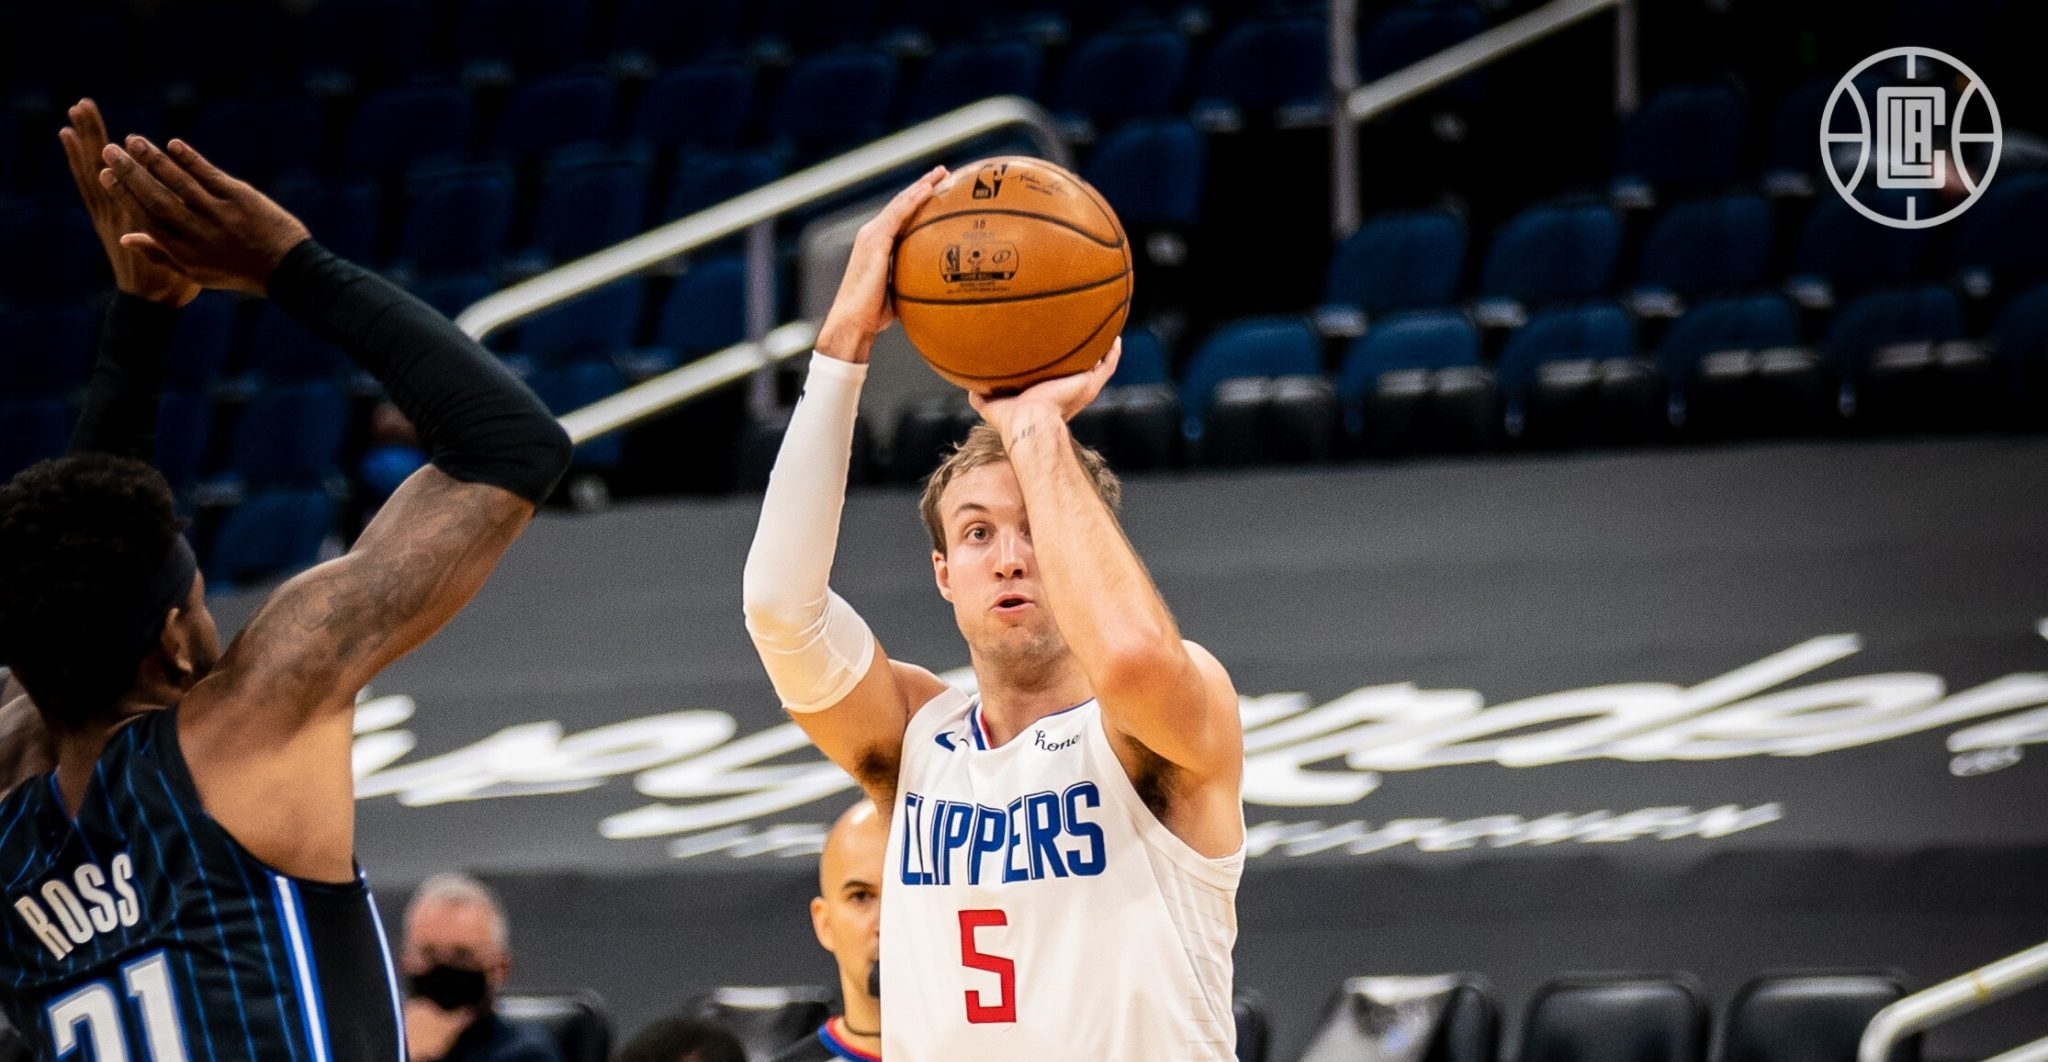 Clippers vs Grizzlies Player Grades